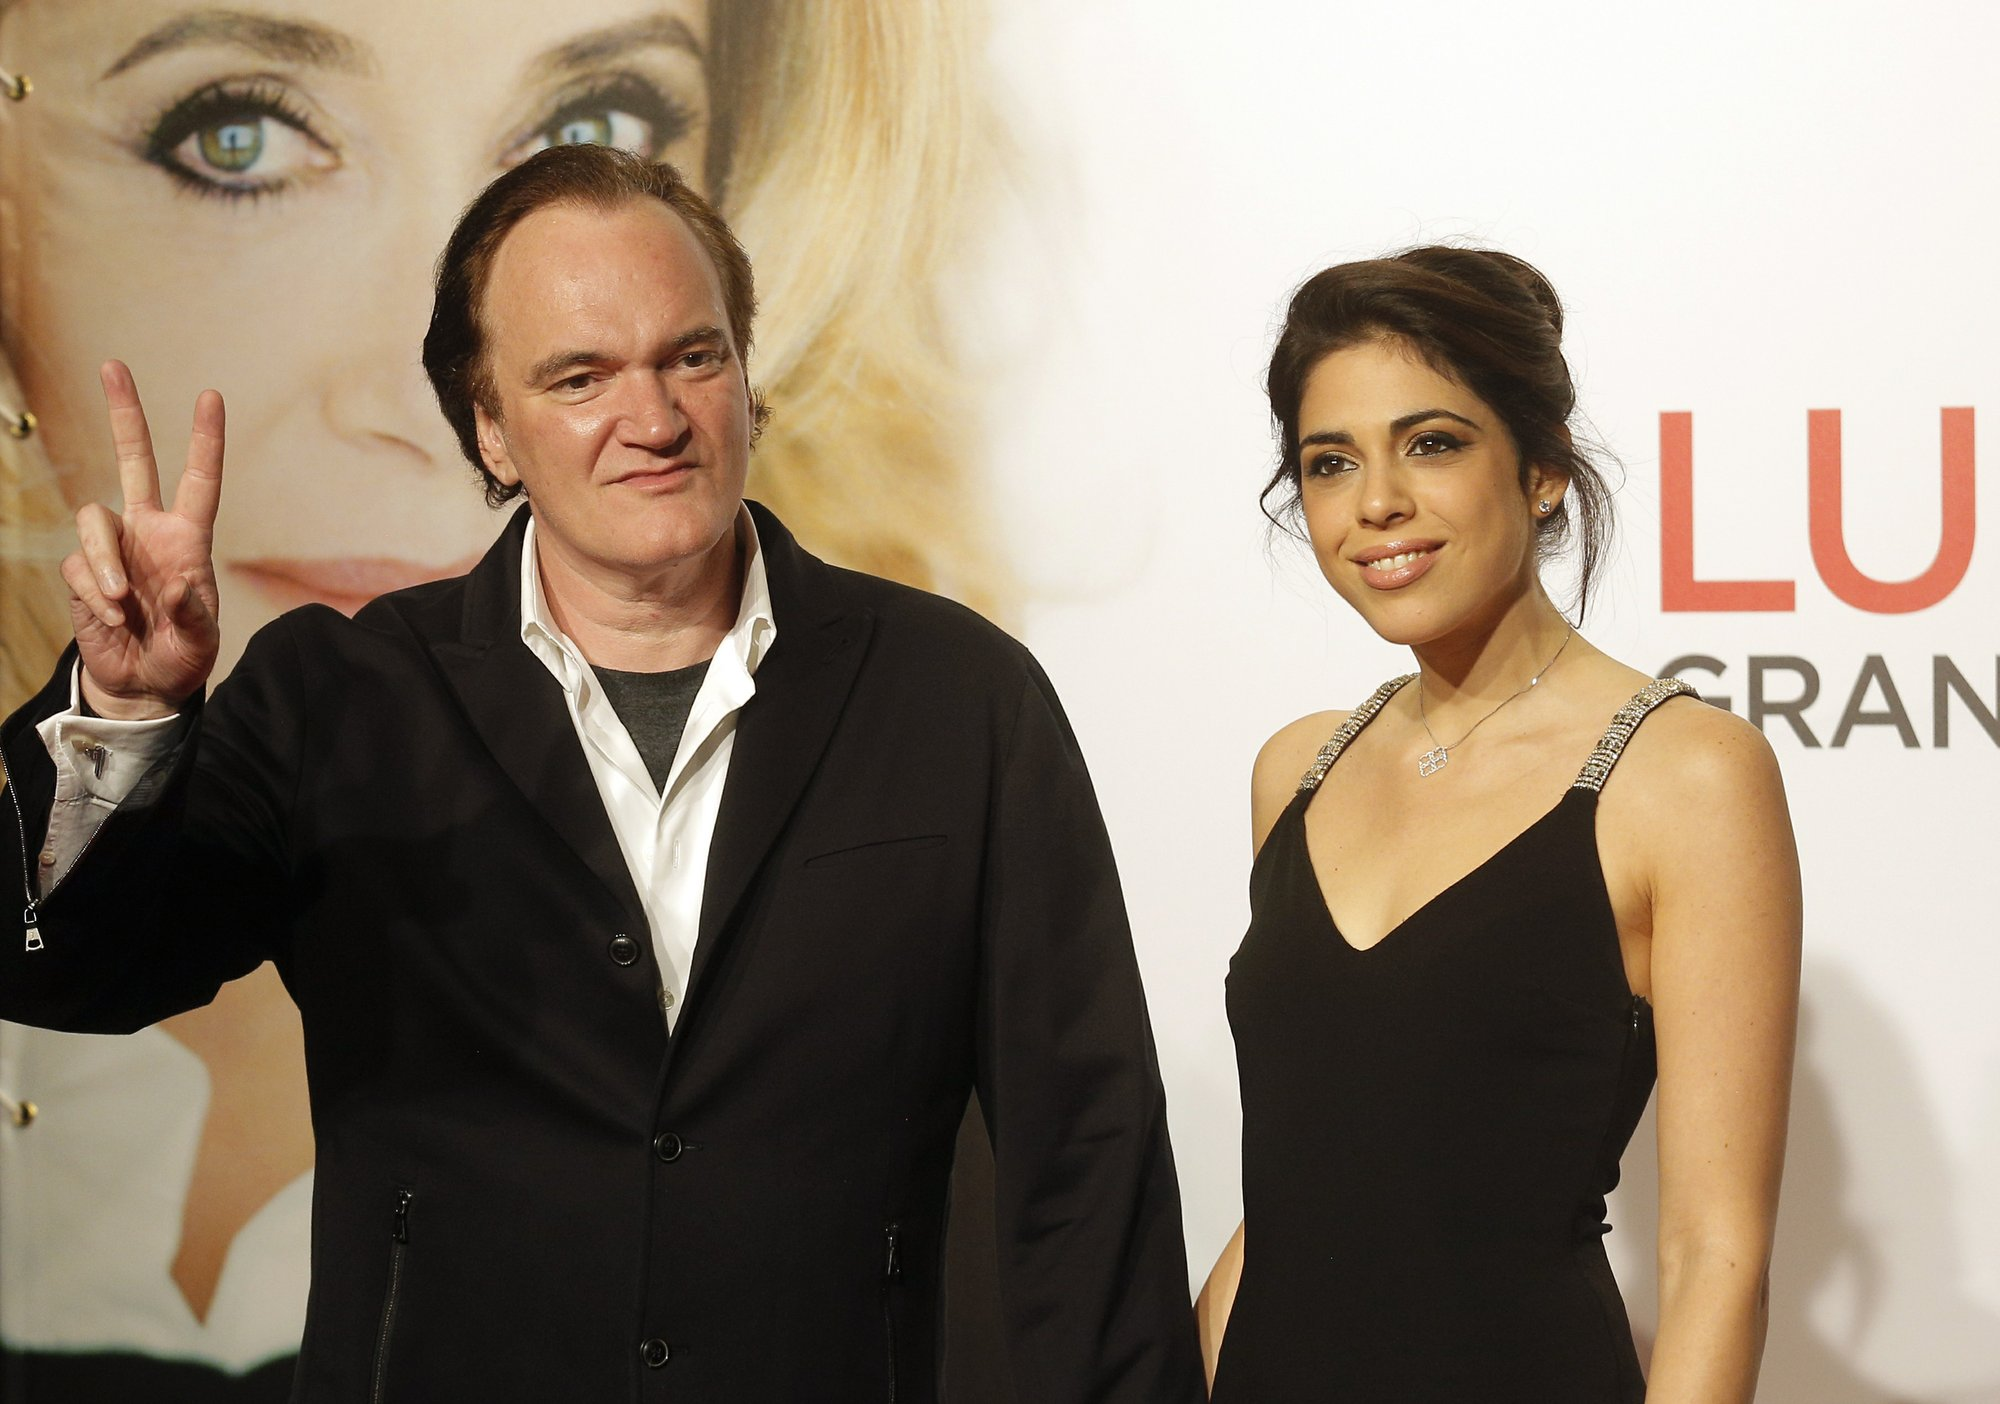 FILE - In this photo, director Quentin Tarantino, left, and singer Daniella Pick arrive at the opening ceremony of the 8th Lumiere Festival in Lyon, central France on Oct. 8, 2016. Photo: AP